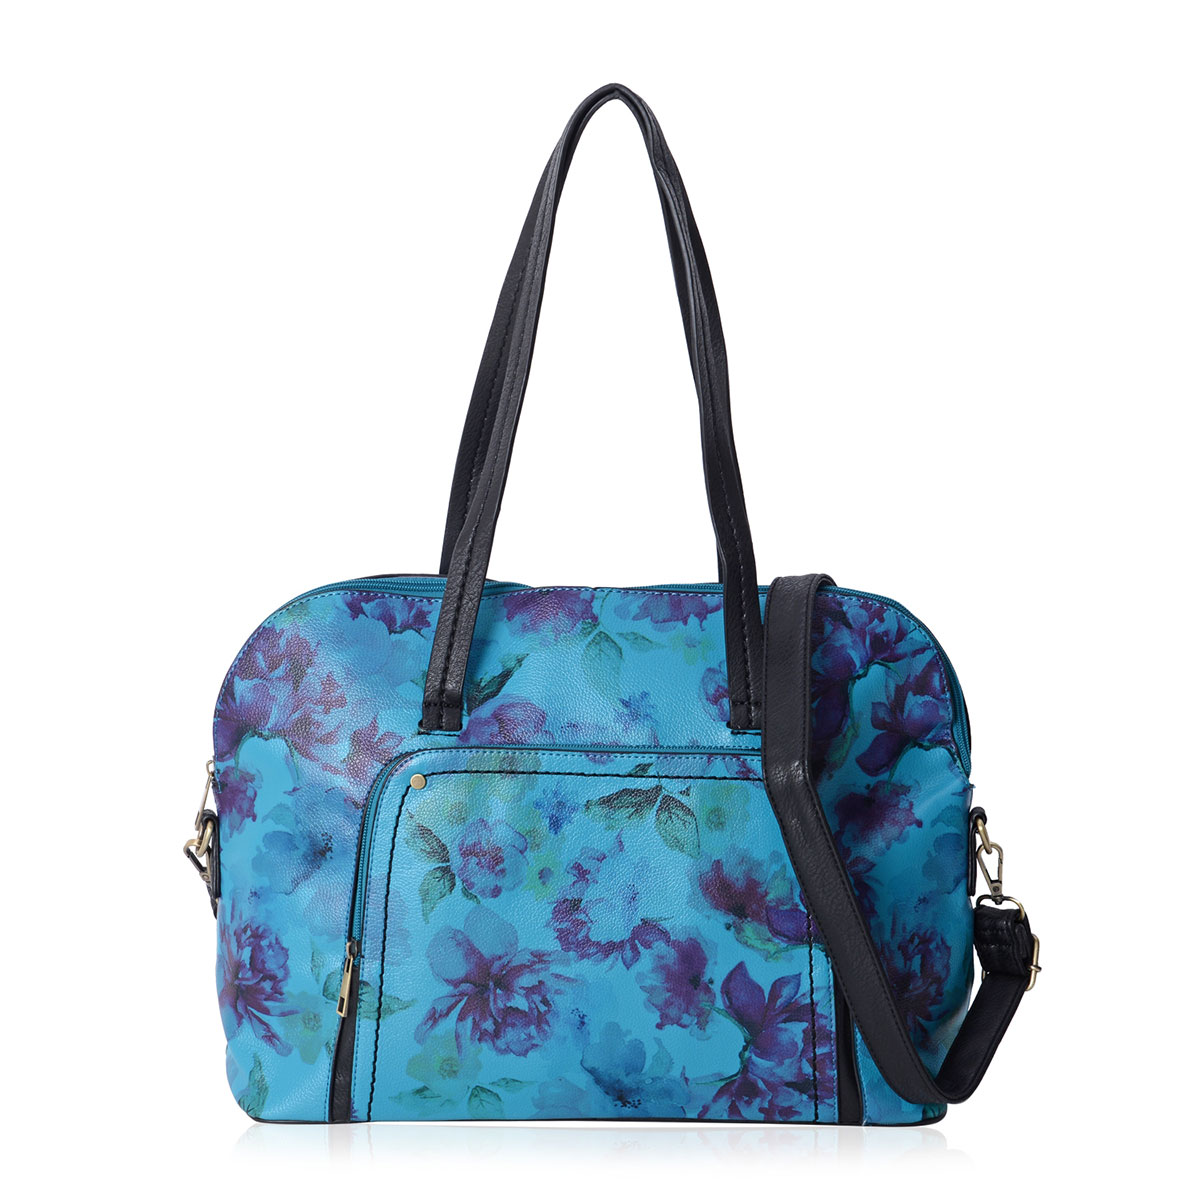 Turquoise with Black Flower Pattern Faux Leather Bowling Bag with Removable  Shoulder Strap (17x5x12 in)  a342189097d4e